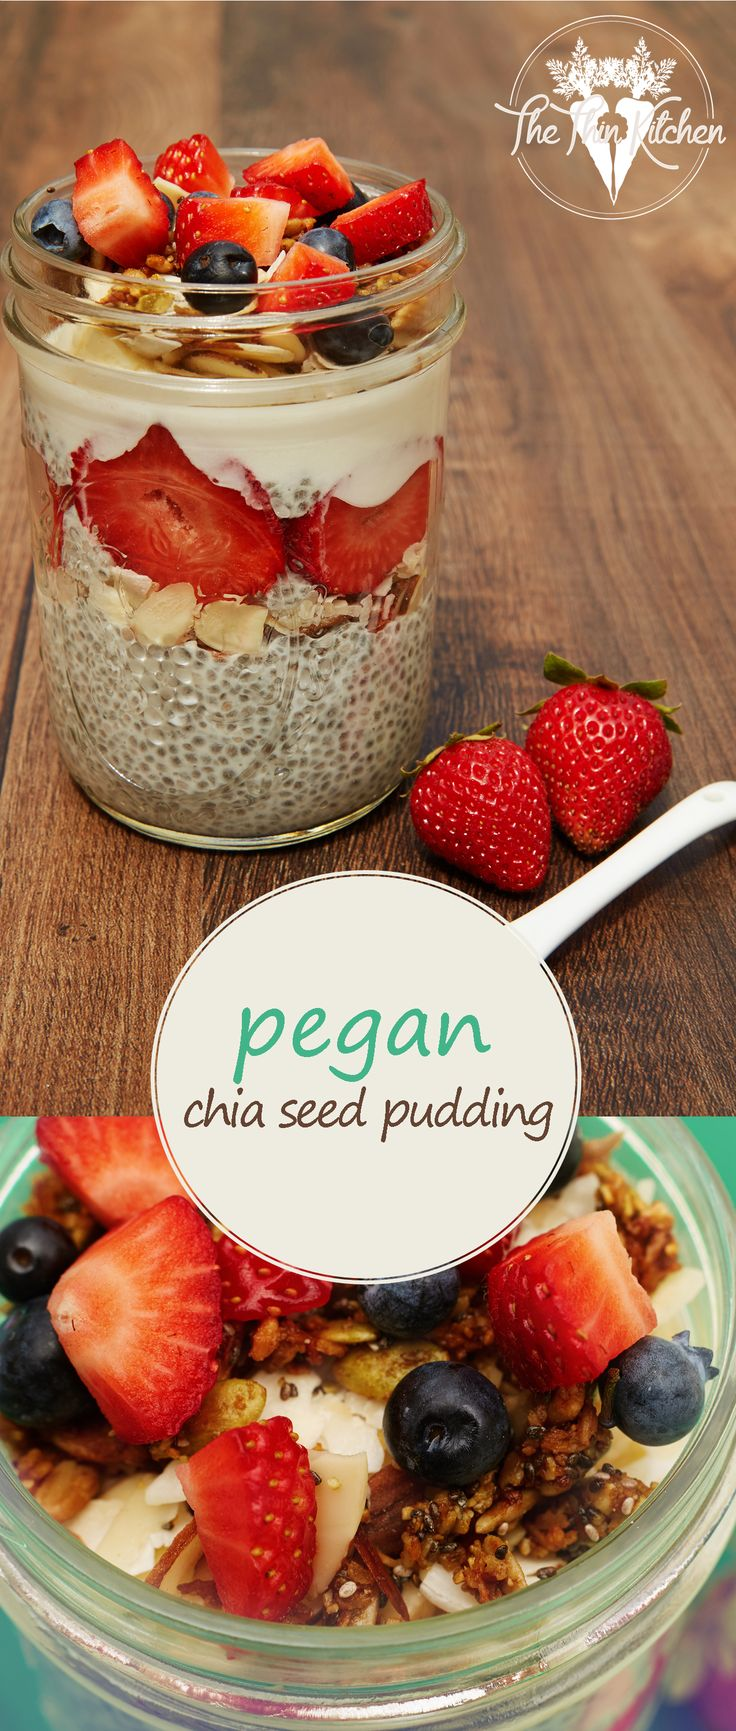 Pegan (Paleo + Vegan) Chia Seed Pudding topped with Paleo granola, berries, coconut and almonds. Great for breakfast or dessert ;)